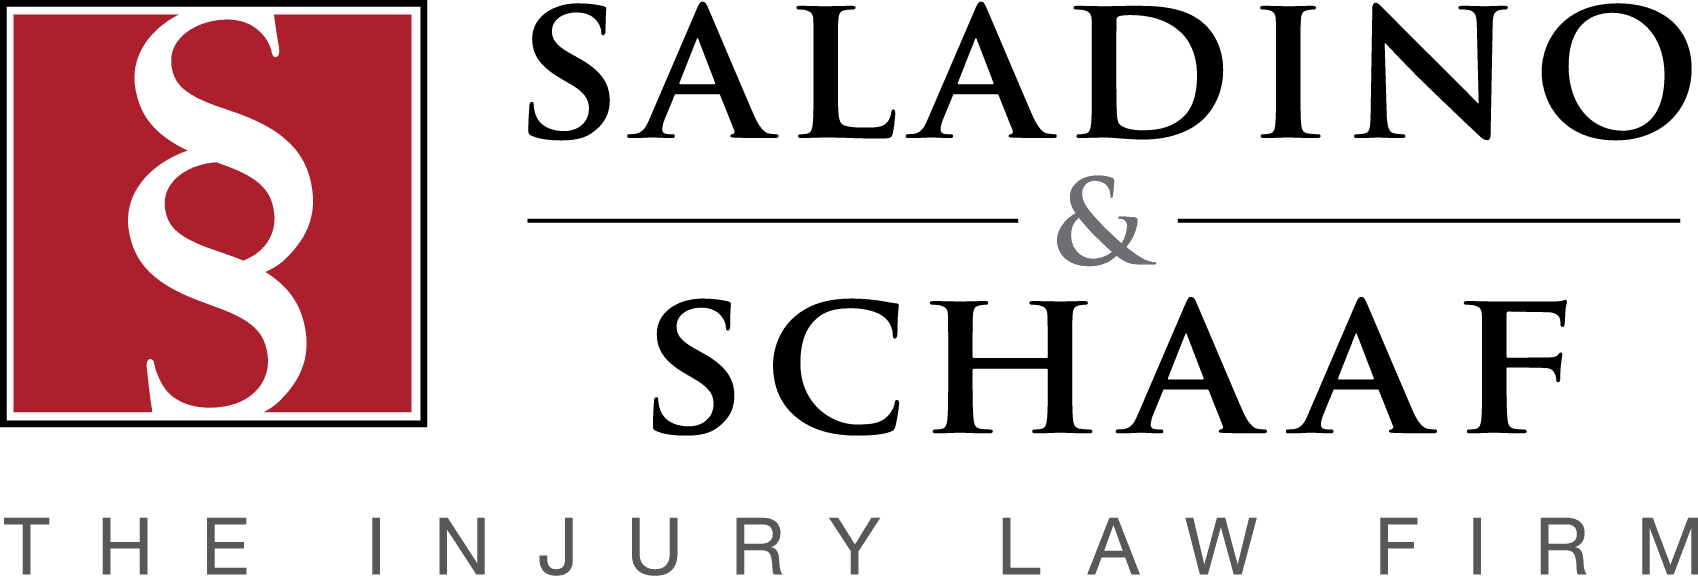 Saladino & Schaaf - Paducah Injury Law Firm